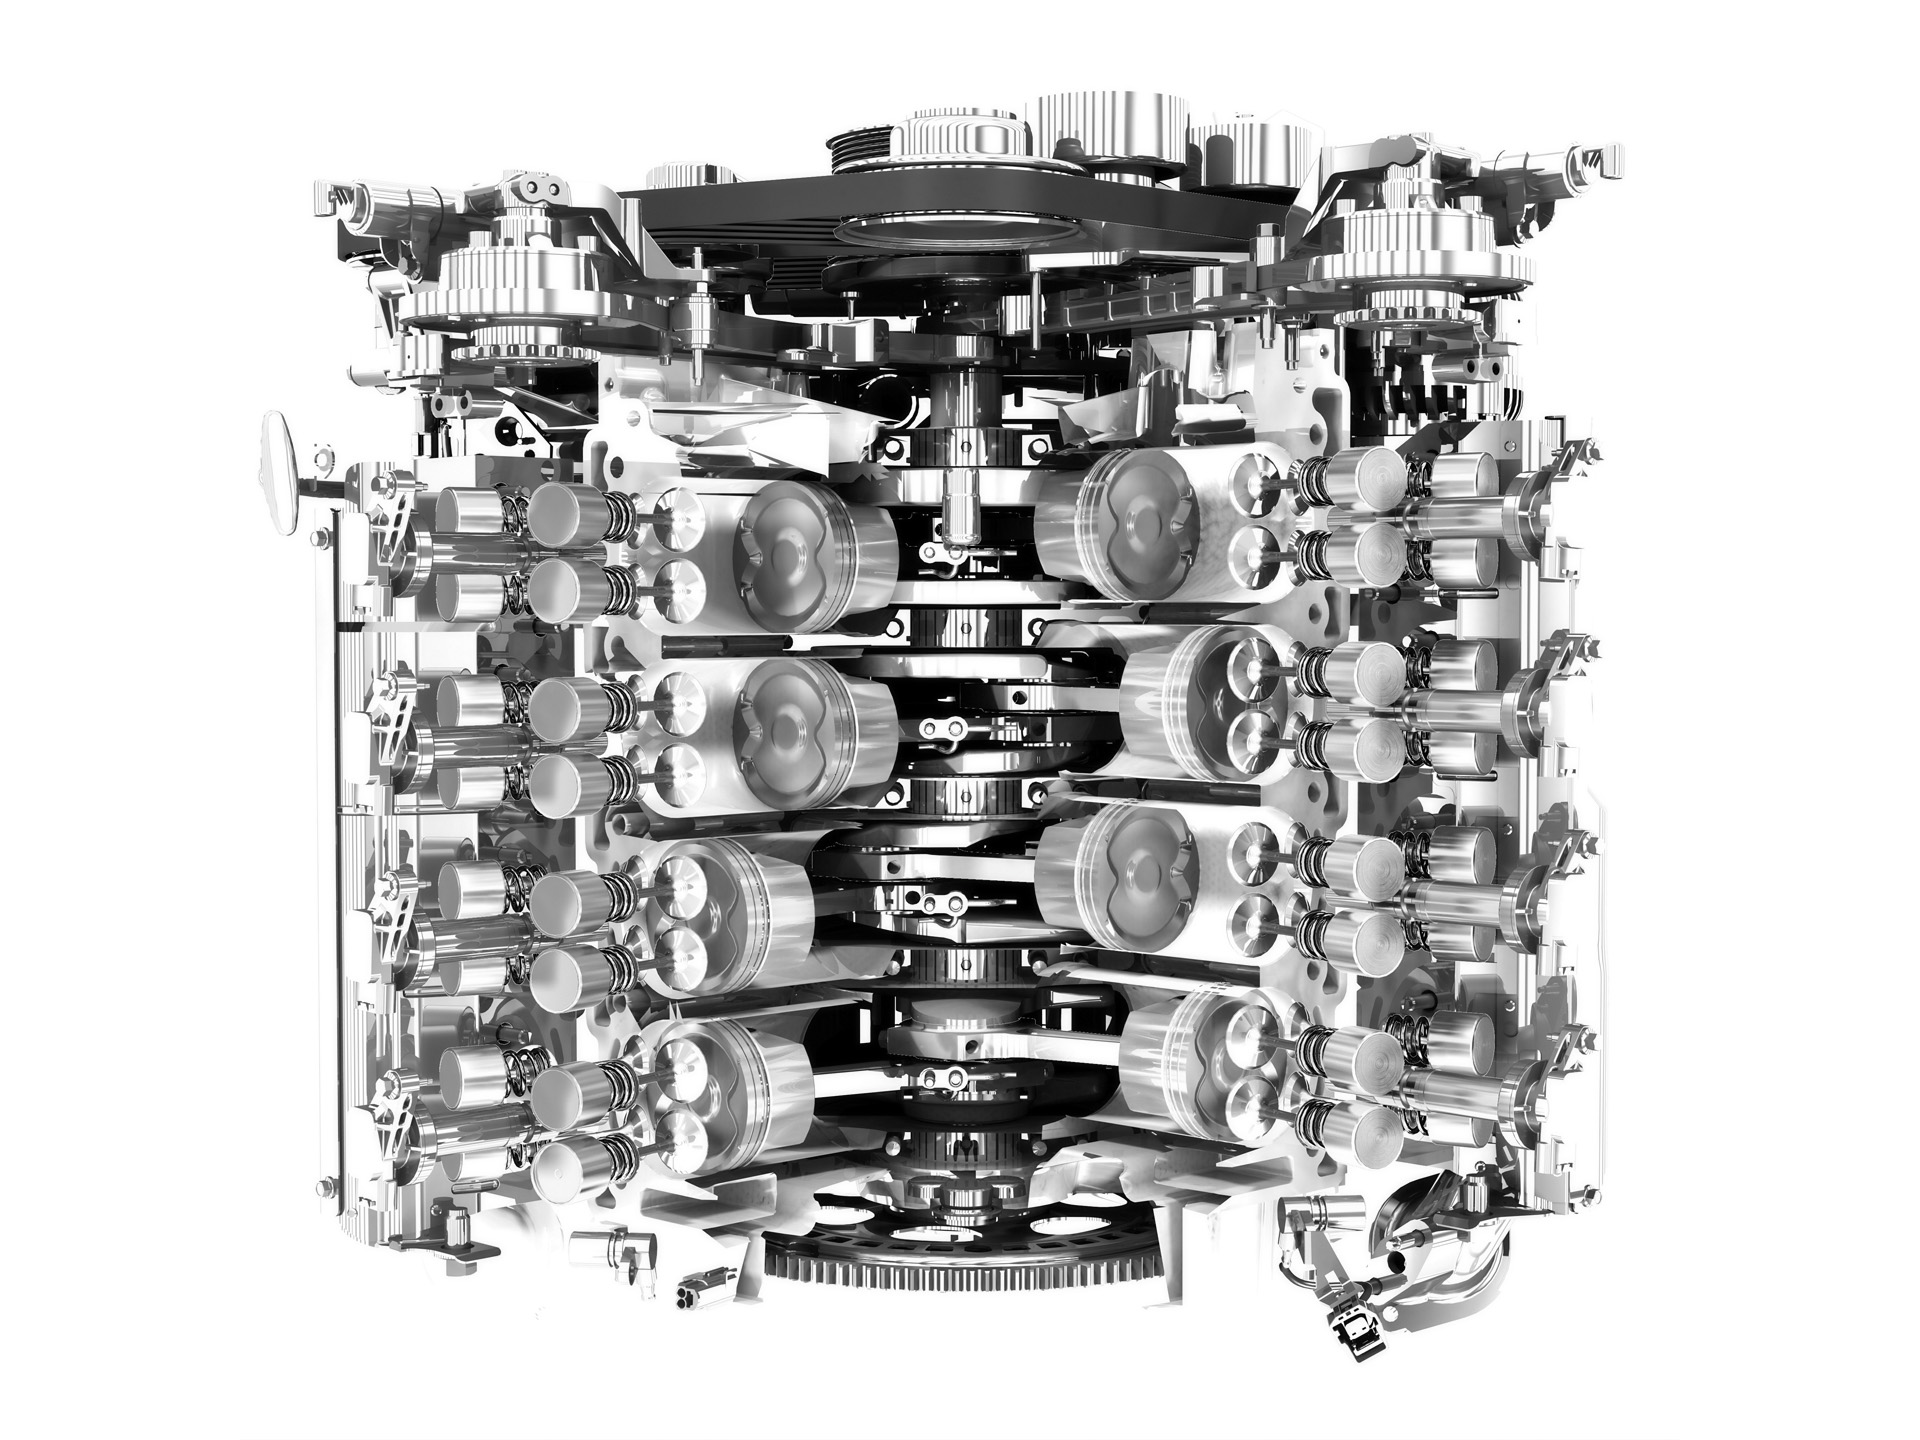 Sample P1317 Engine